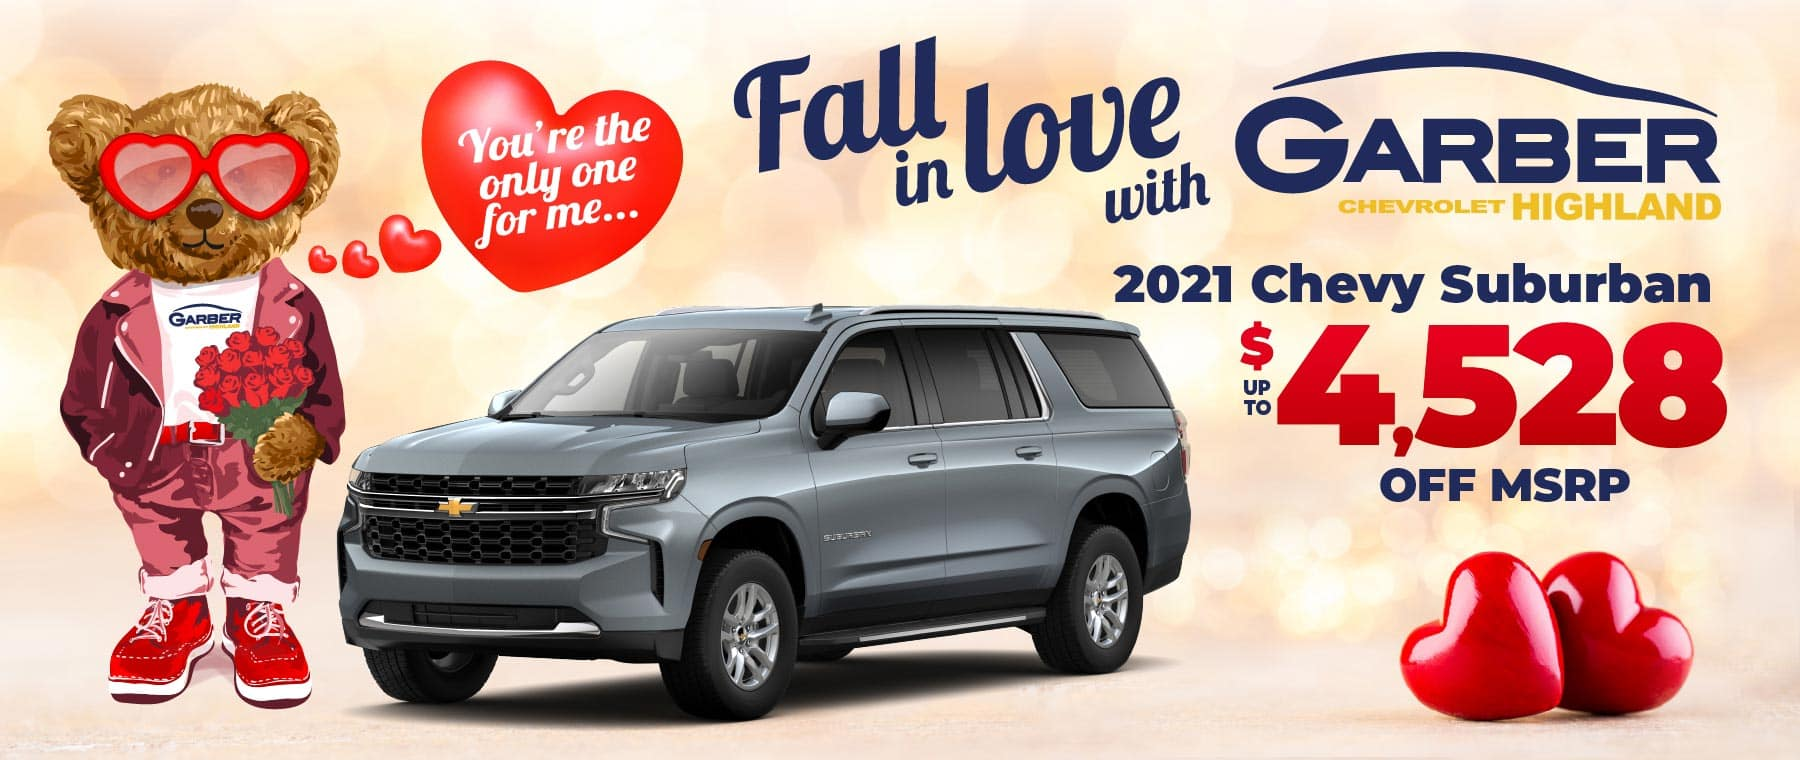 2021 Chevy Suburban - up to $4528 off MSRP